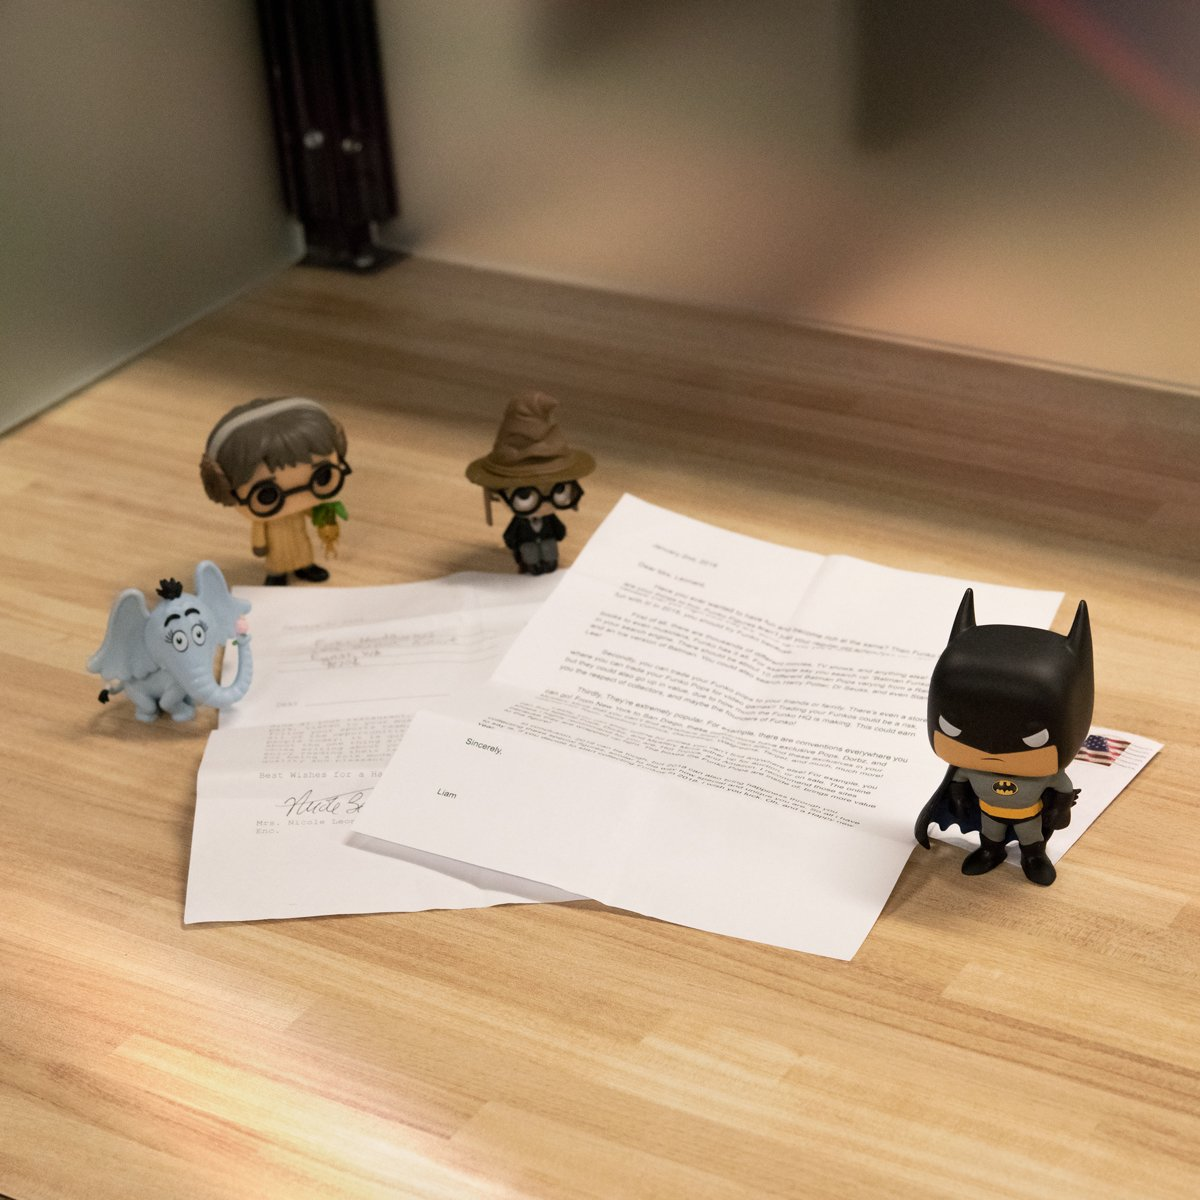 Mrs. Nicole asked her Middle School students to write letters to convince her to try something new for a writing exercise. Her student Liam chose Funko and said we have fun for everyone! Thanks for writing in, well send a fun prize pack for your whole class! #FunkoKidsCorner